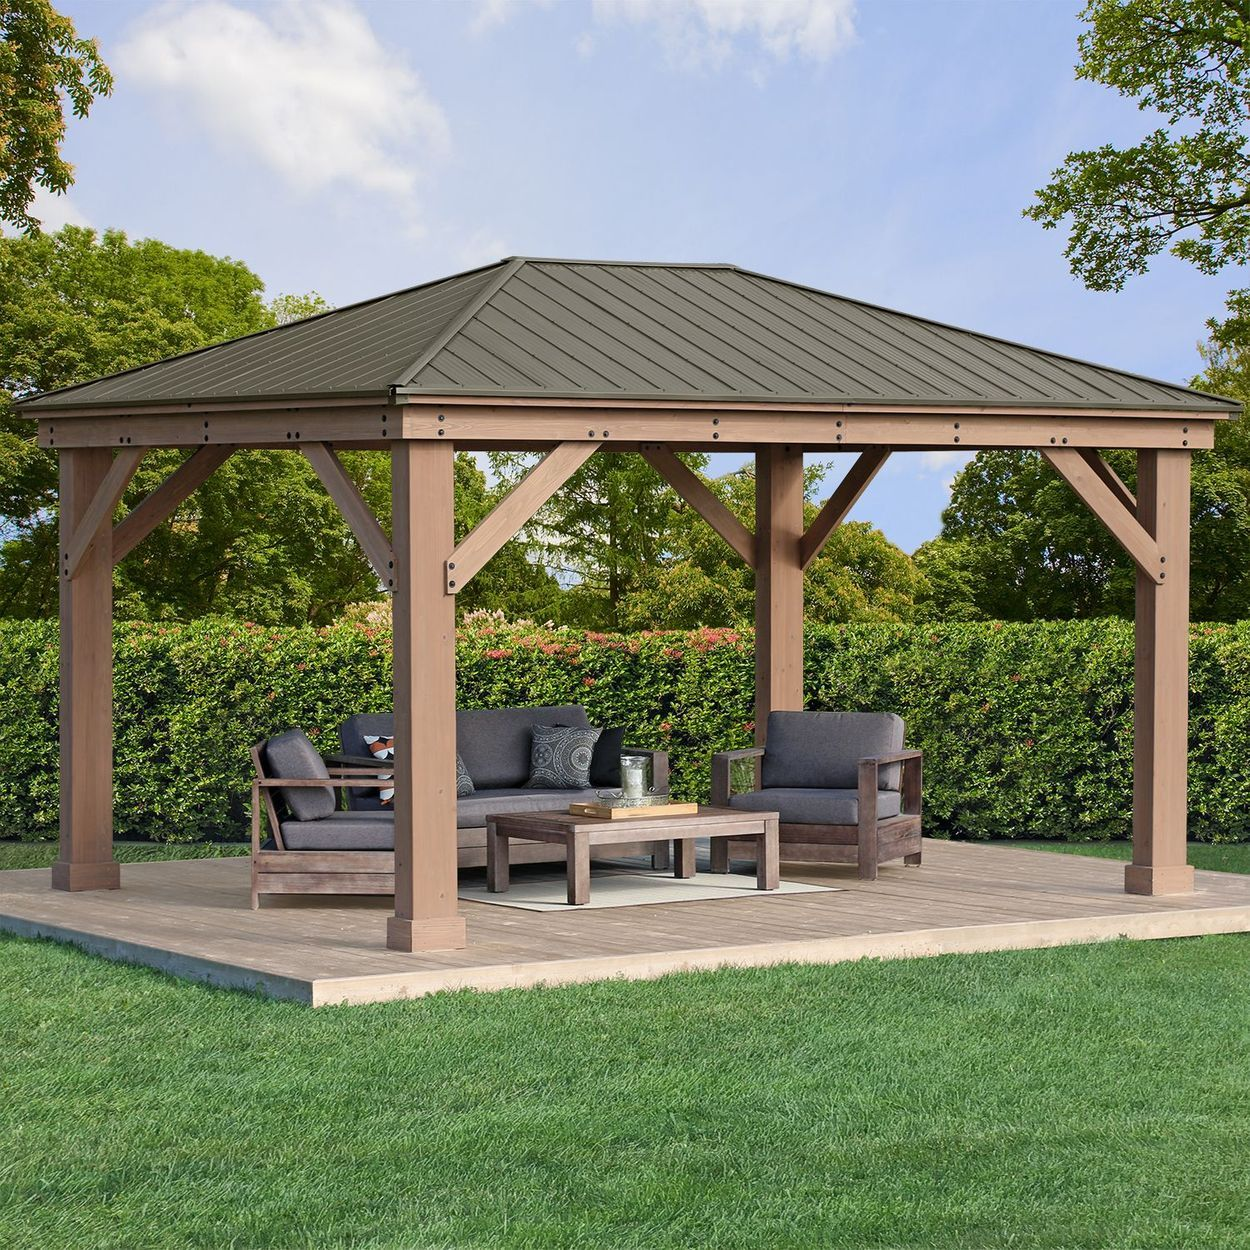 12 X 16 Cedar Gazebo With Aluminum Roof Backyard Pavilion Patio Gazebo Backyard Patio